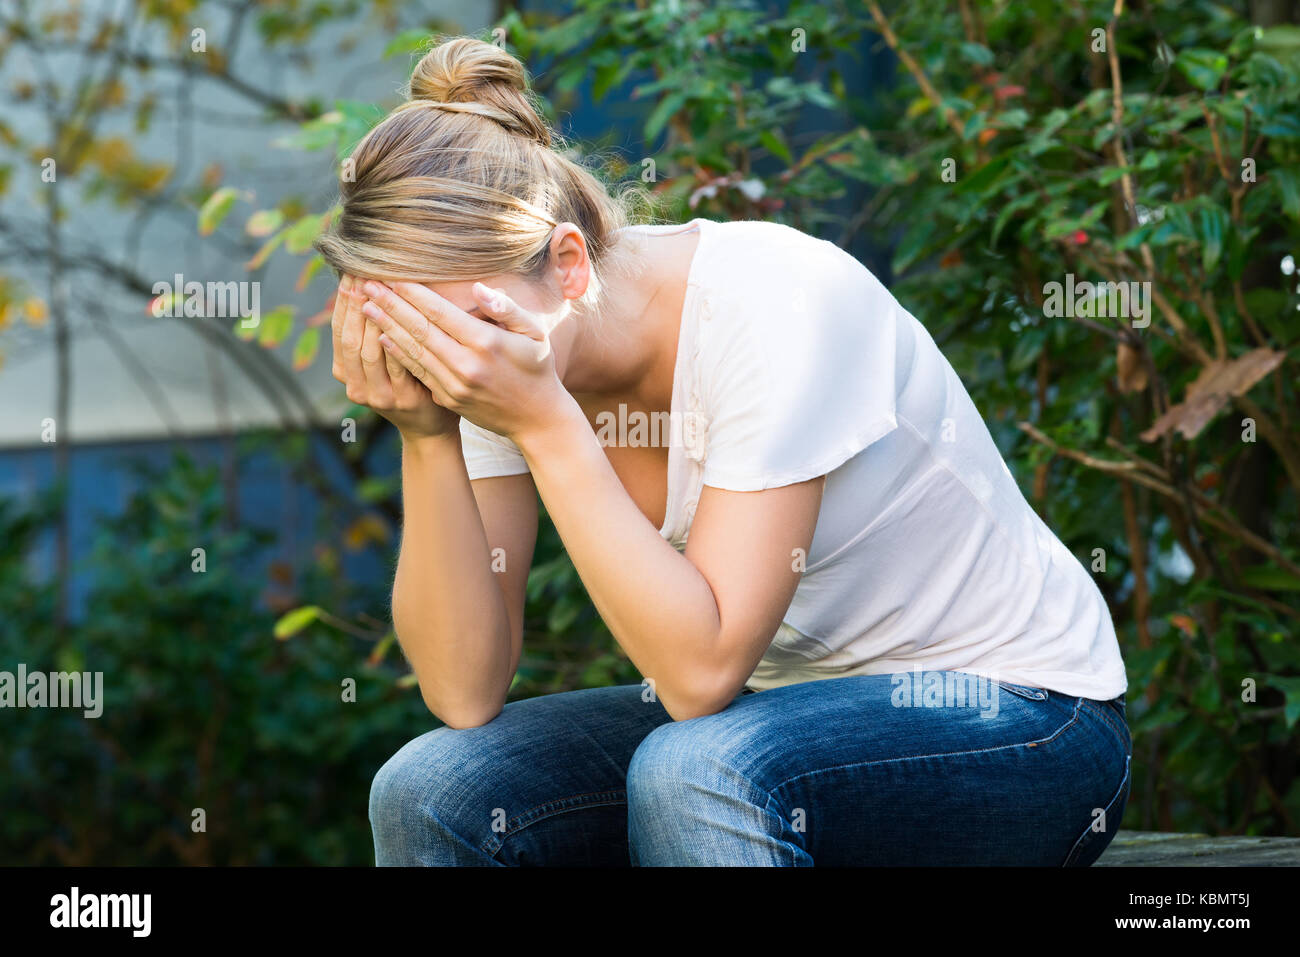 Tensed young woman covering face with hands - Stock Image